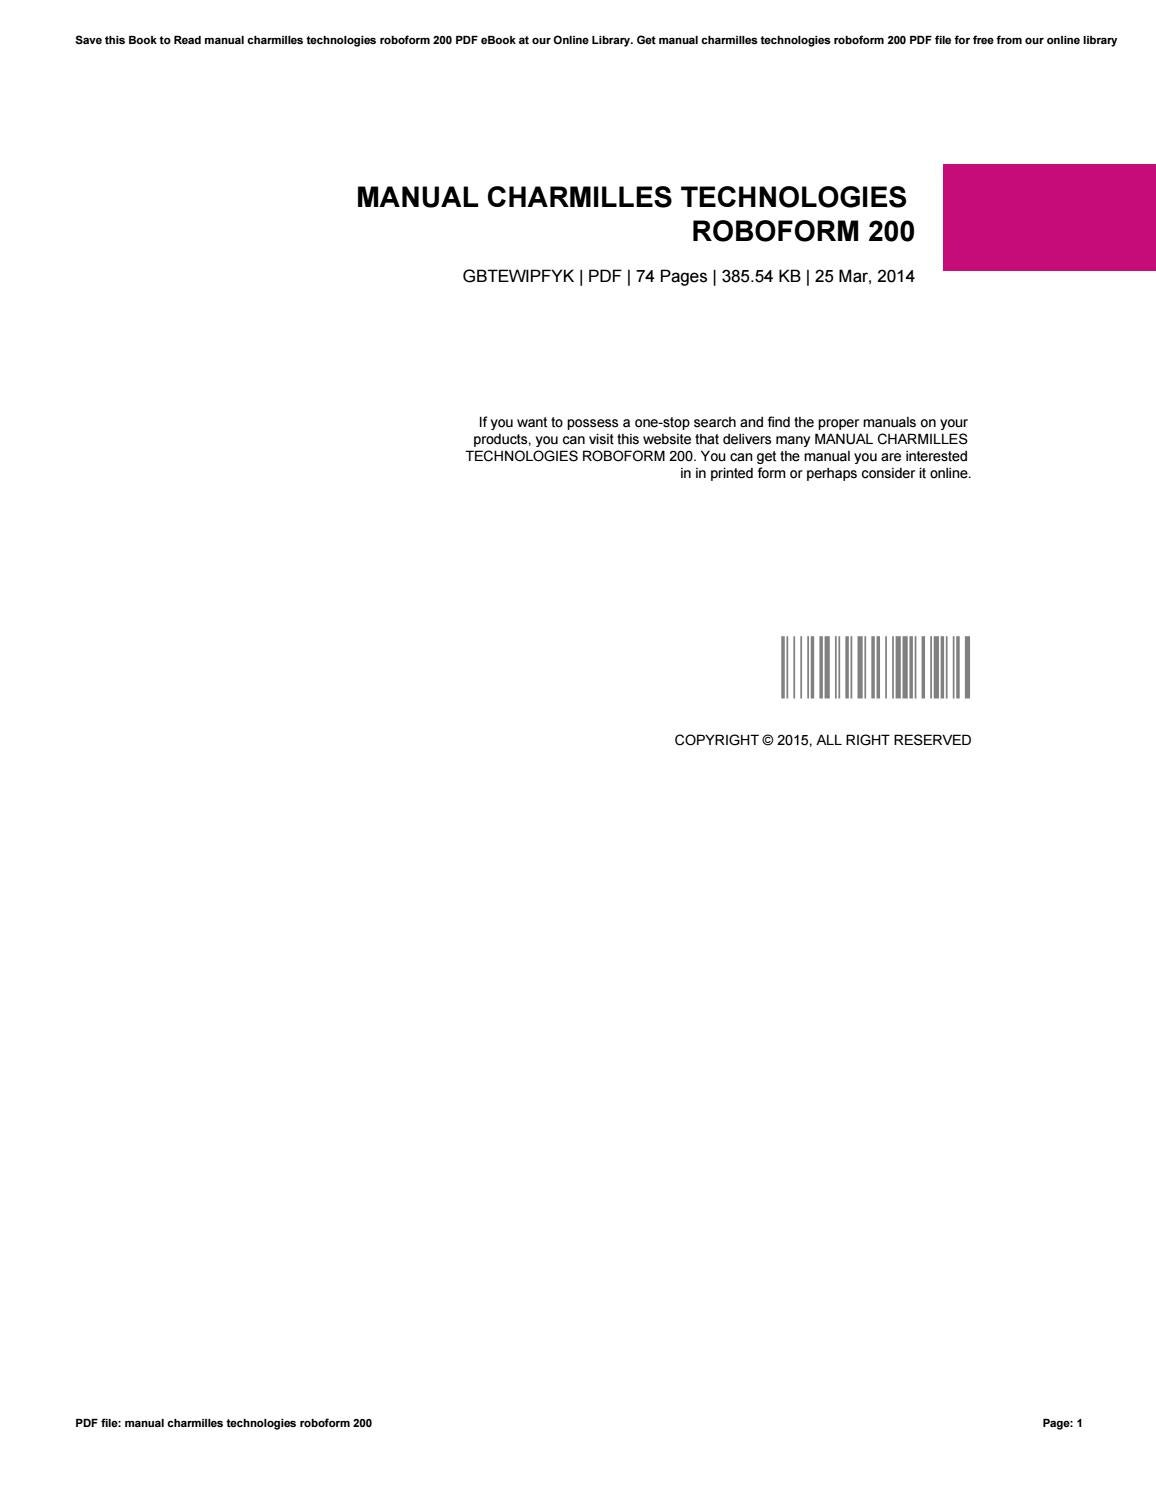 manual charmilles technologies roboform 200